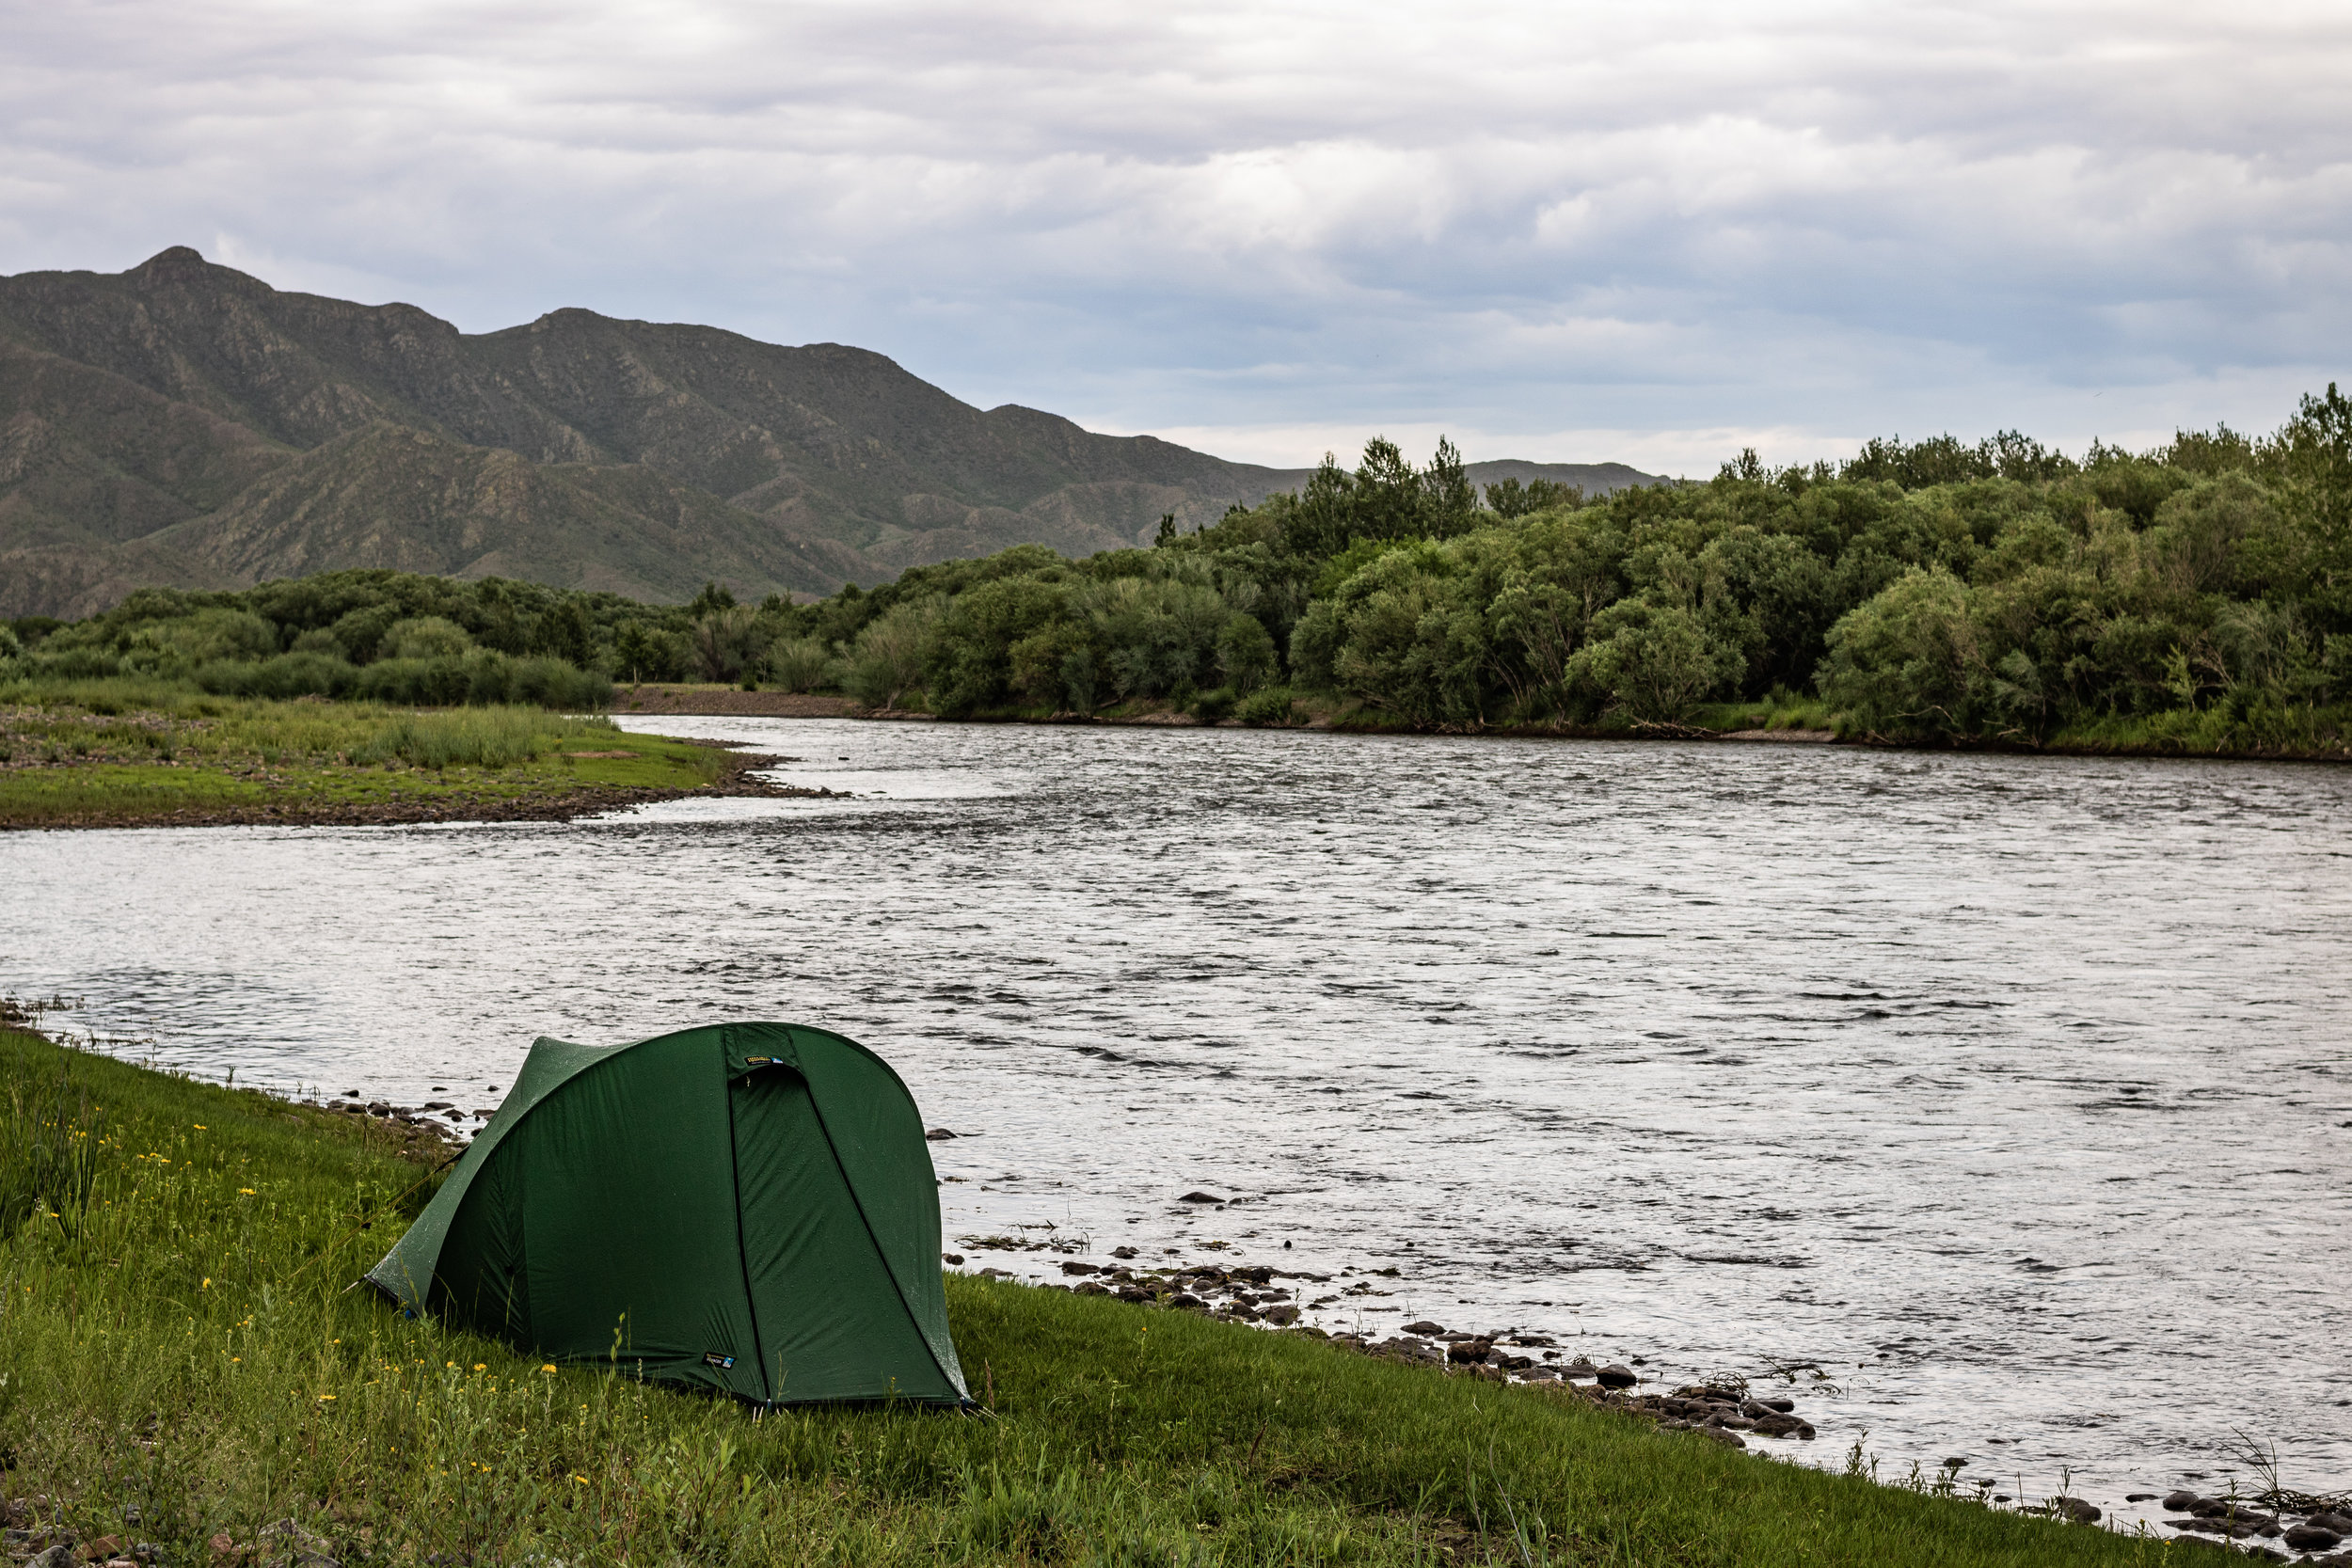 The Voyager pitched on the banks of the Chuluut river in Outer Mongolia, while on expedition.